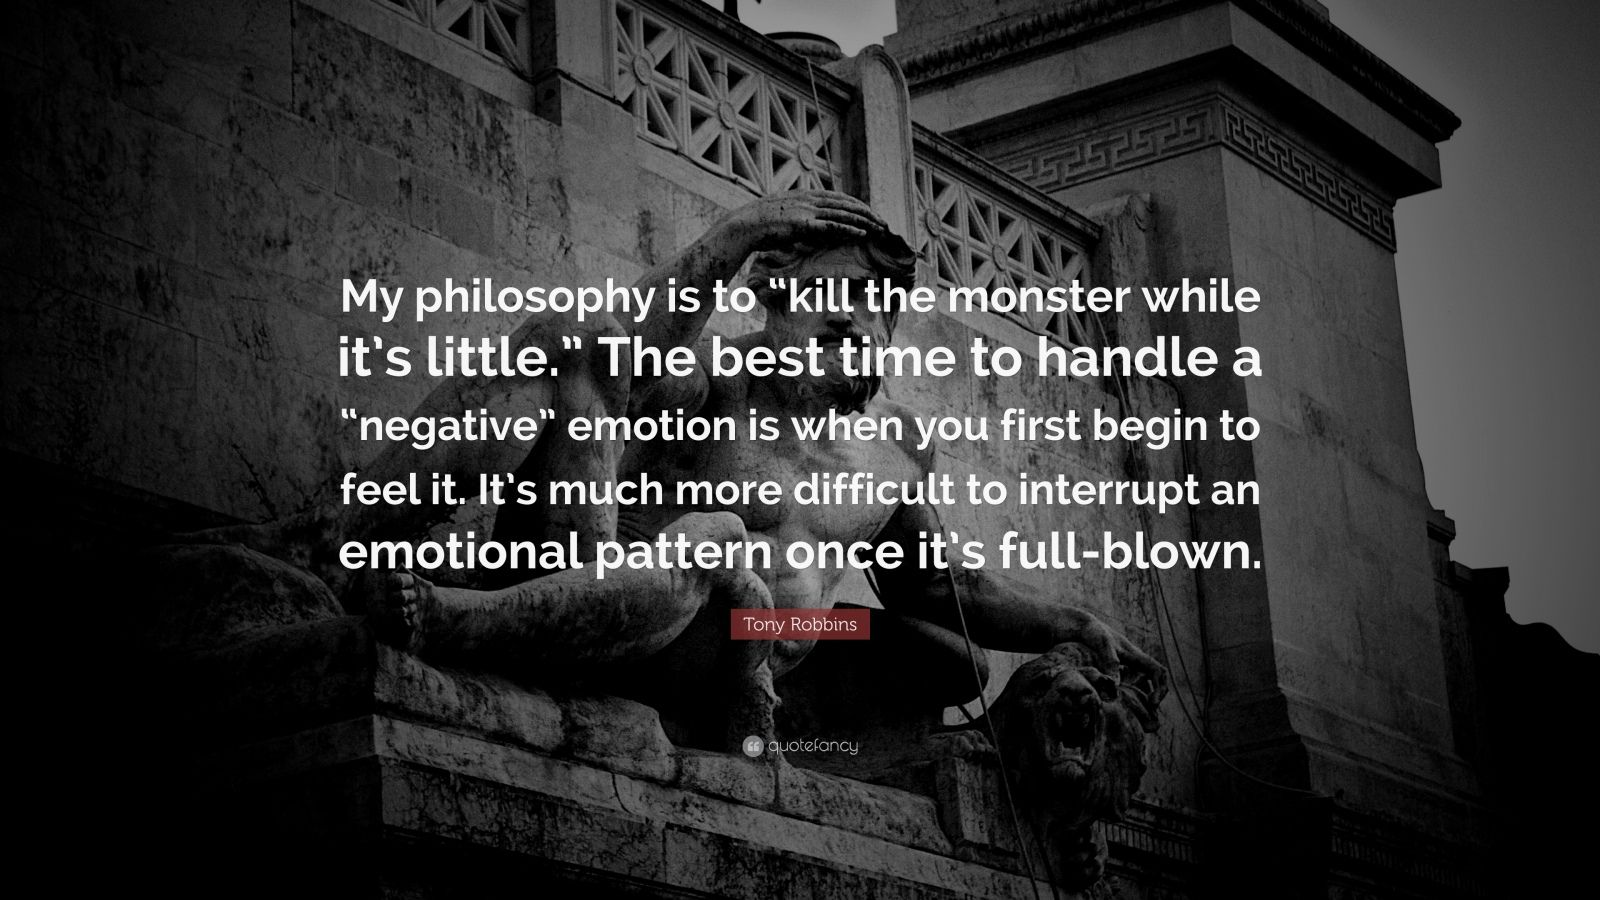 """Tony Robbins Quote: """"My philosophy is to """"kill the monster while it's little."""" The best time to handle a """"negative"""" emotion is when you first begin to feel it. It's much more difficult to interrupt an emotional pattern once it's full-blown."""""""